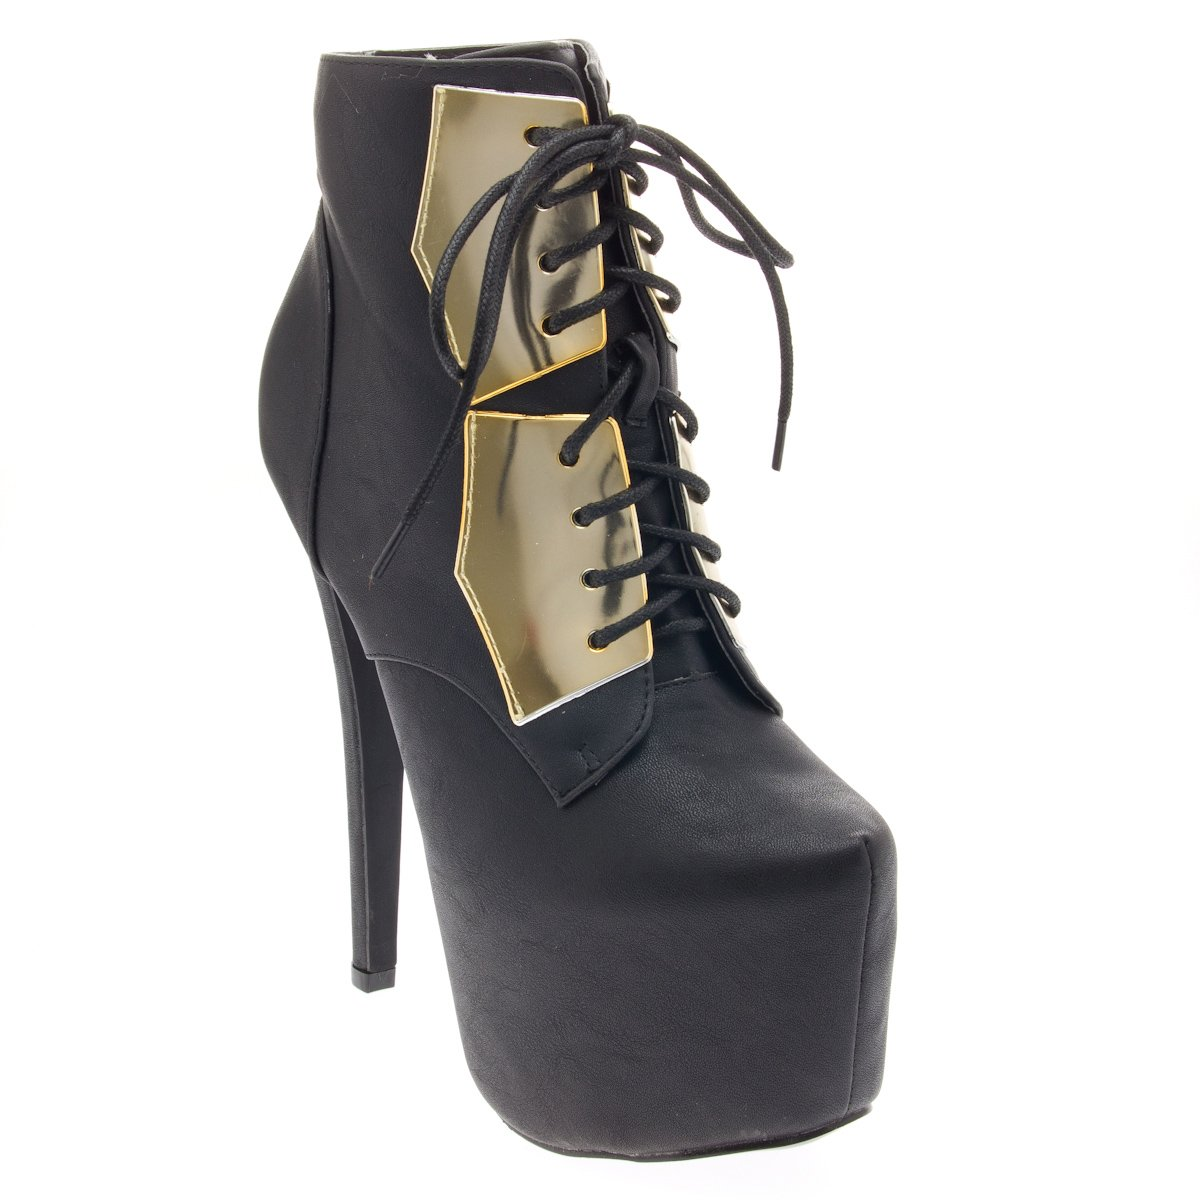 Glaze Womens 43-NELLY20 Closed Toe Lace Up Platform Stiletto High Heel Ankle Booties